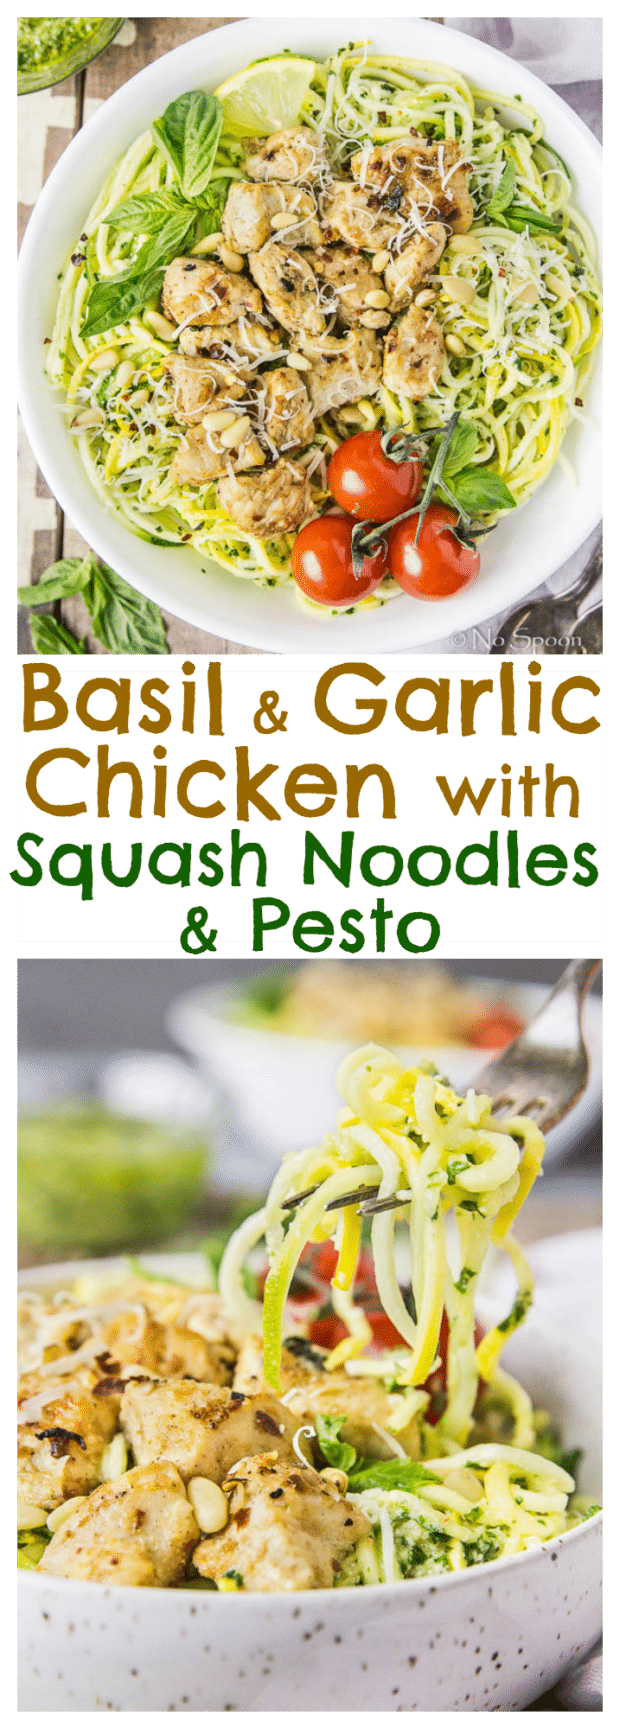 Garlic-Basil Chicken & Summer Squash Noodles with Pesto- long pin1